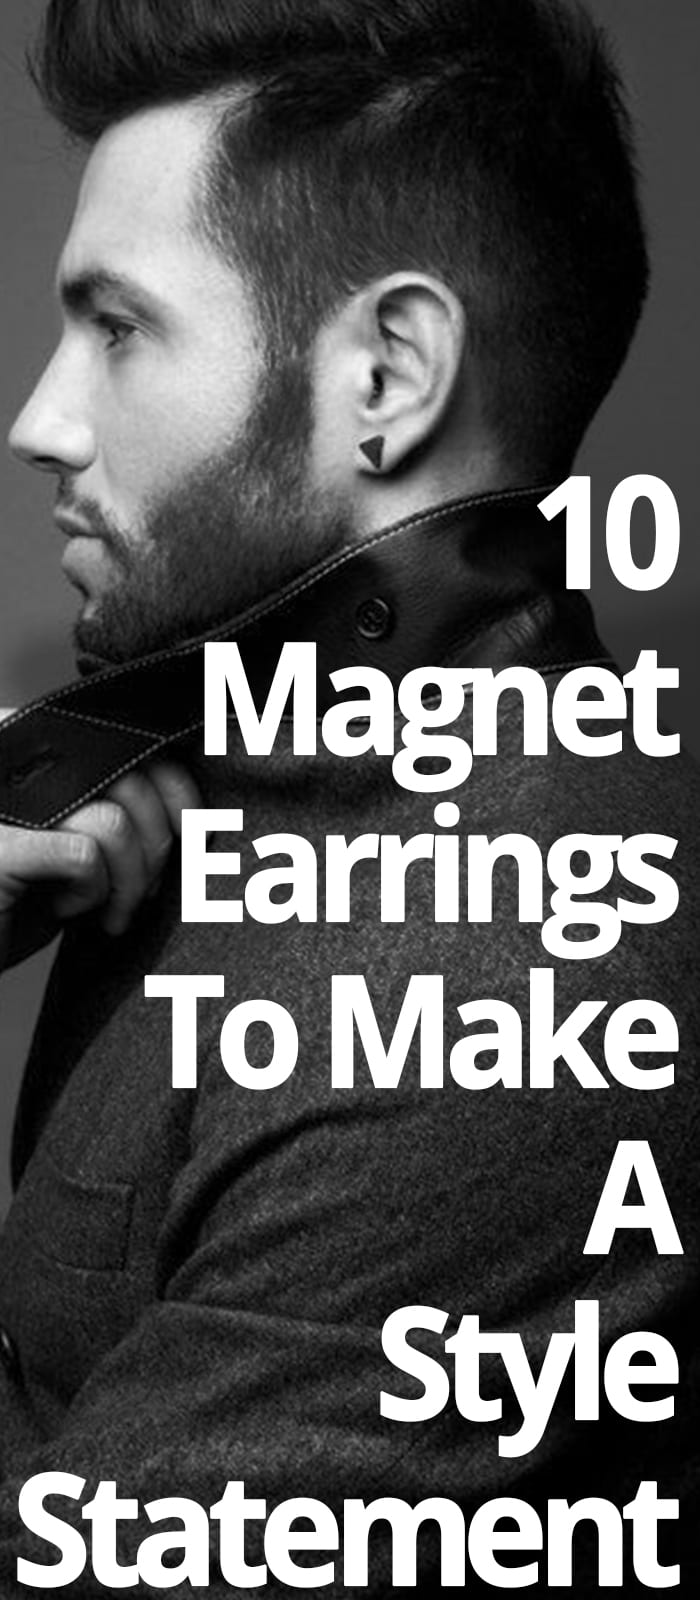 MAGNET EARRINGS FOR MEN